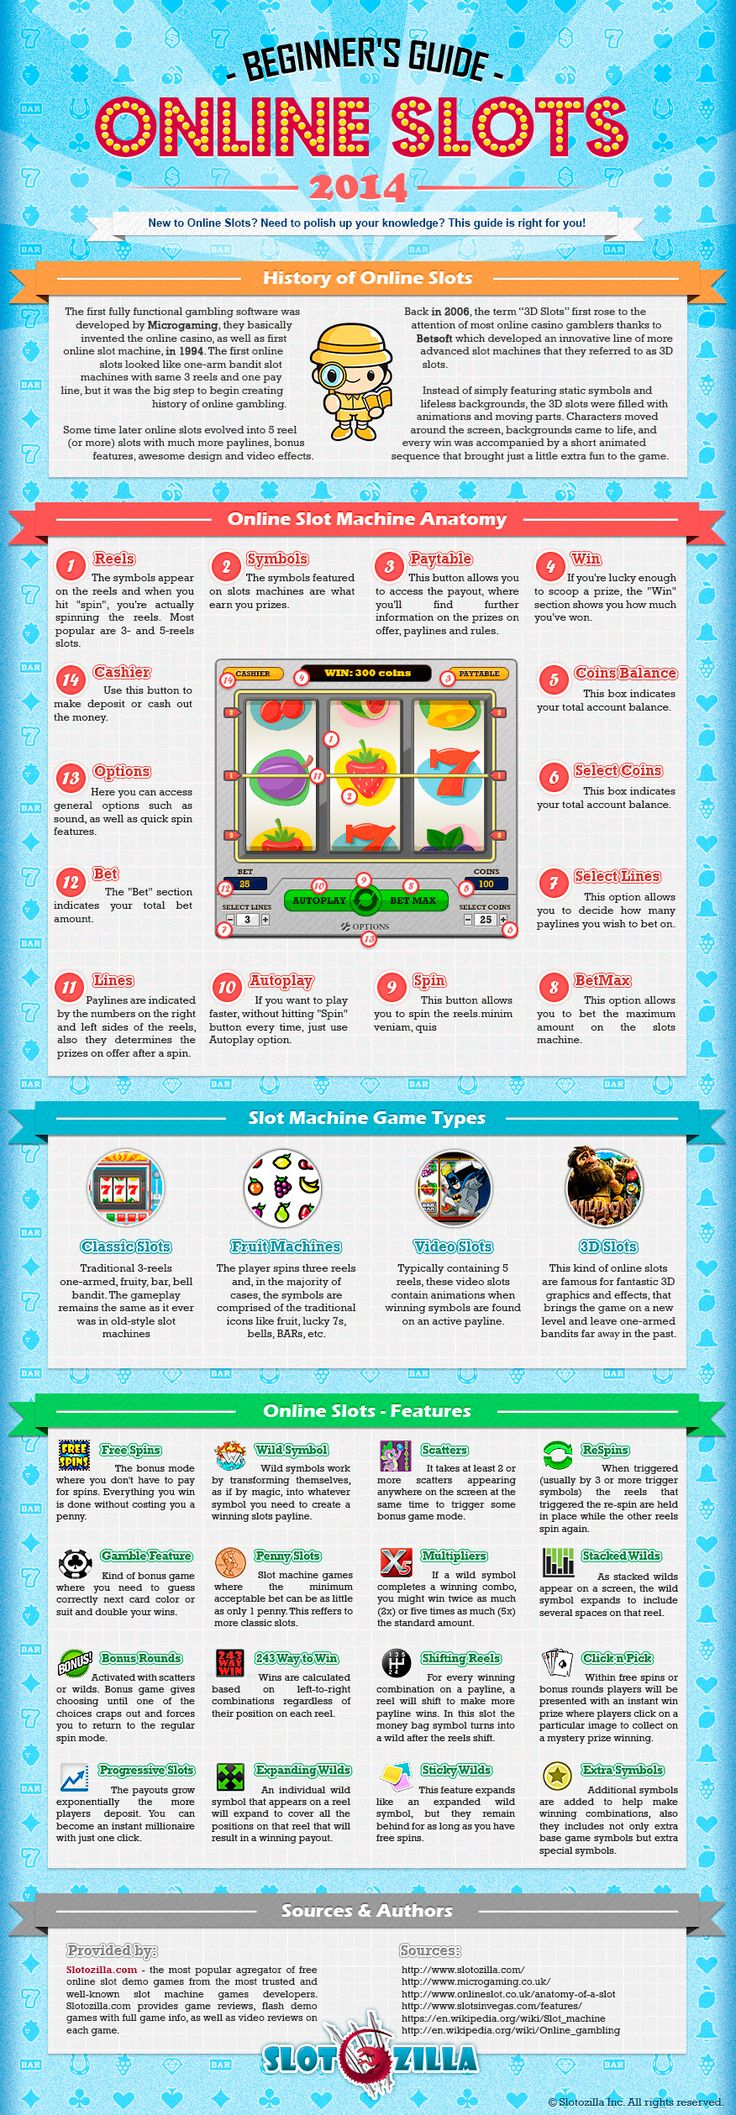 New to online slots? want to brush your skills? Then, you are at the right place casinoinfographics.com presents best infographic on Beginners Guide to Online Slots – 2014.